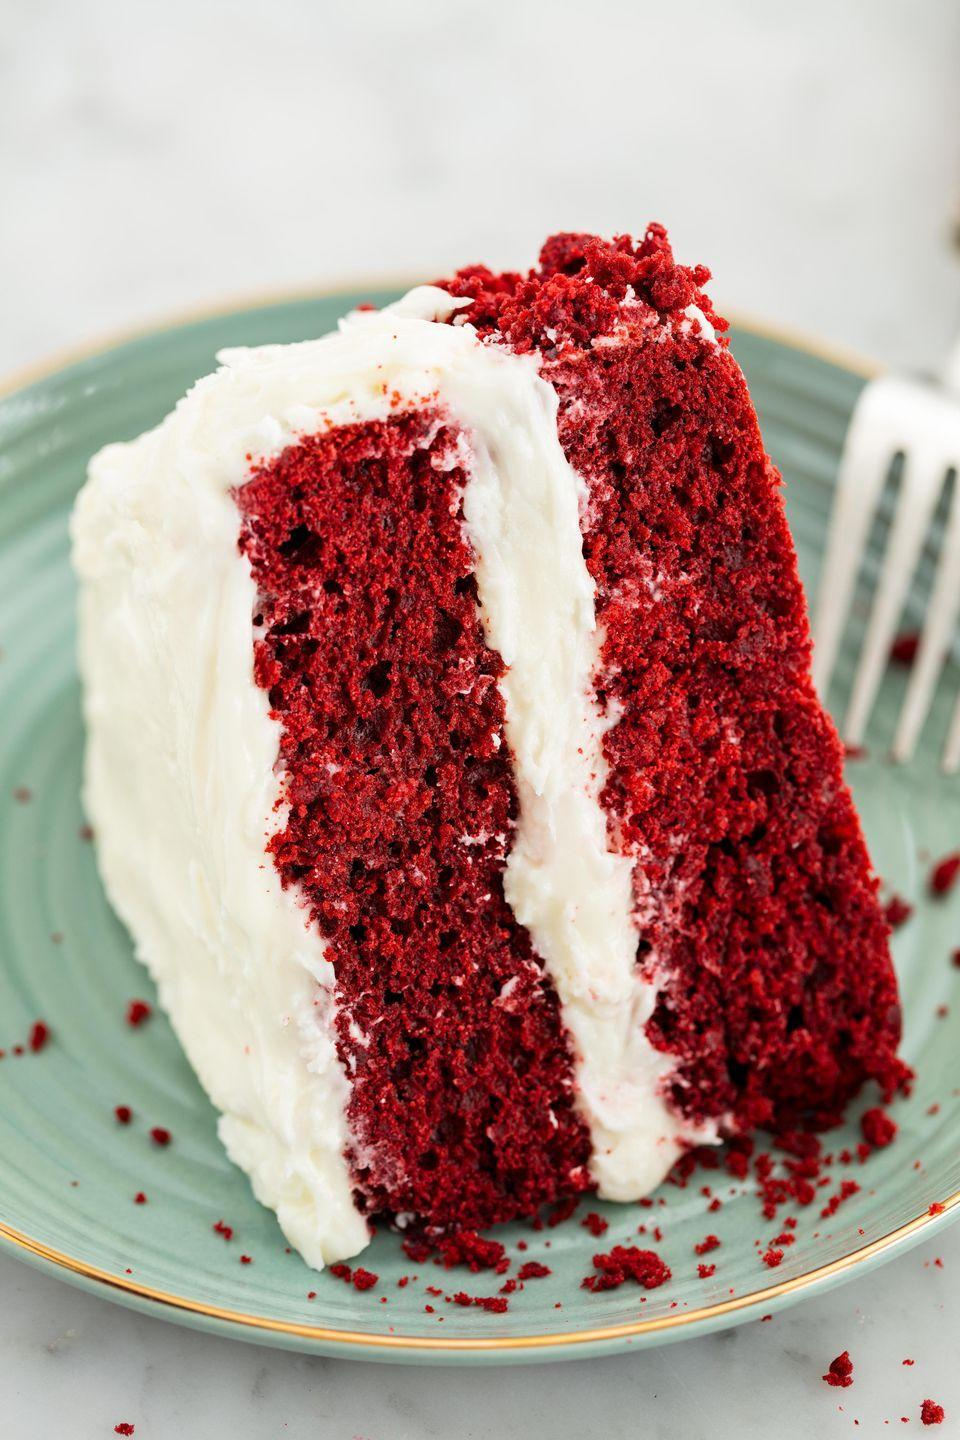 "<p>Nothing beats cream cheese frosting.</p><p>Get the recipe from <a href=""https://www.delish.com/cooking/recipe-ideas/recipes/a58093/best-red-velvet-cake-recipe/"" rel=""nofollow noopener"" target=""_blank"" data-ylk=""slk:Delish"" class=""link rapid-noclick-resp"">Delish</a>. </p>"